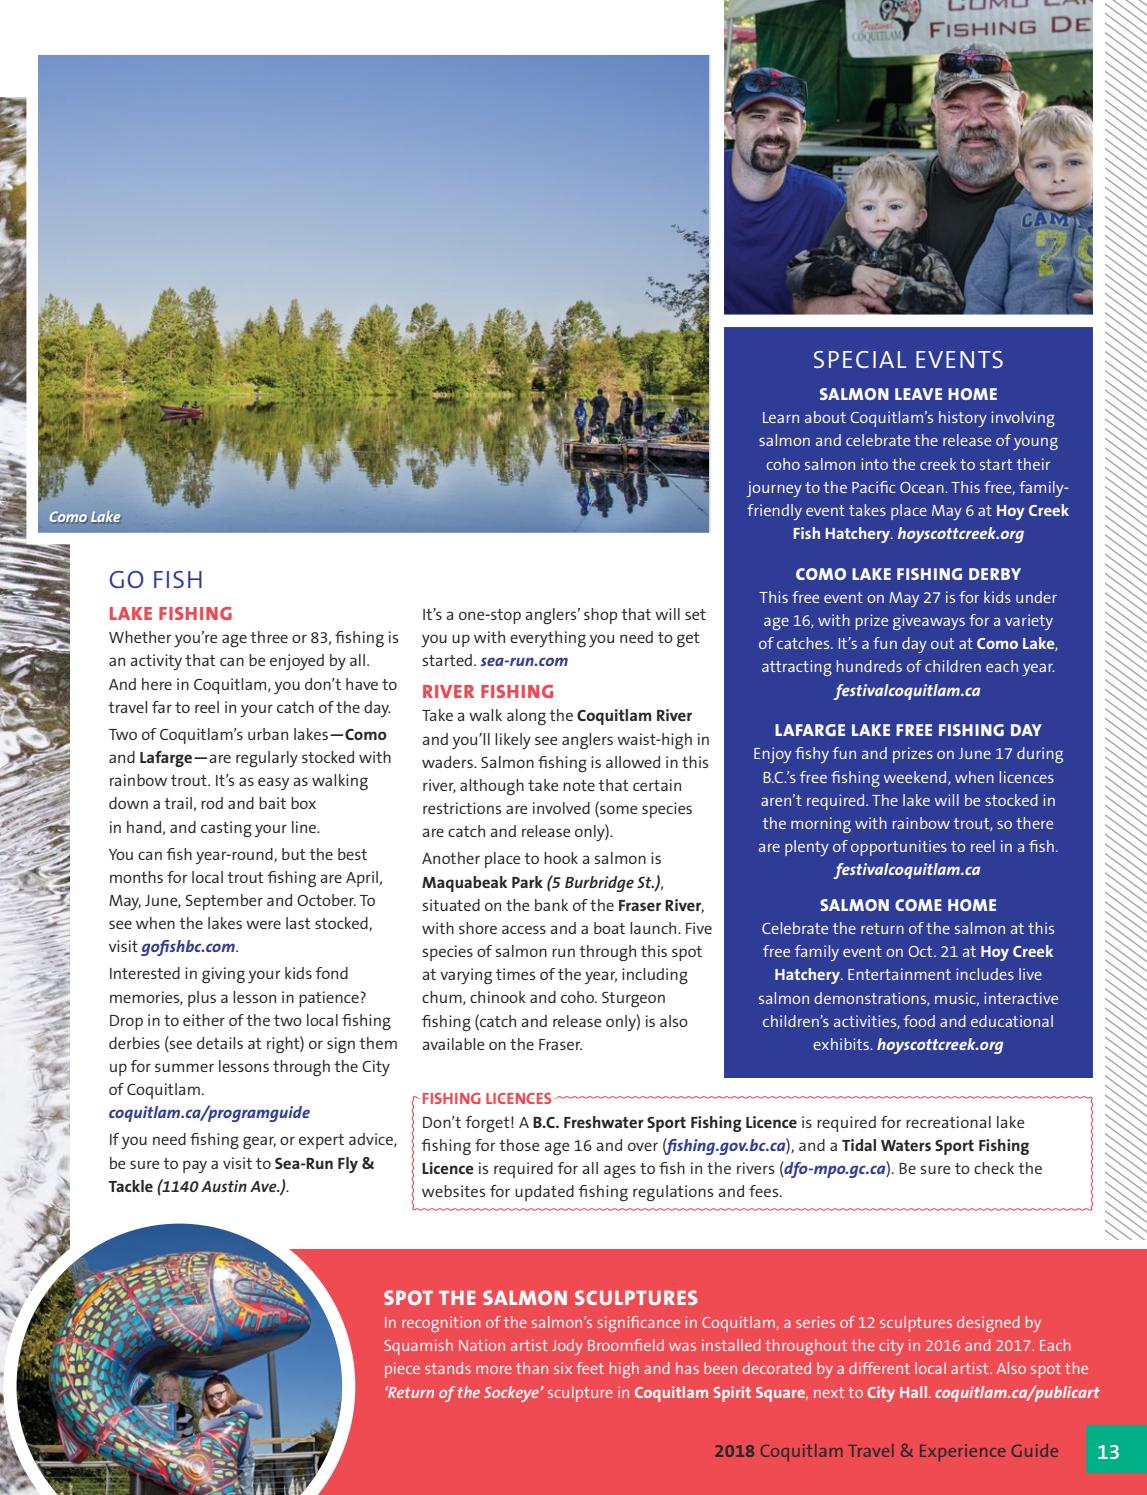 2018 Coquitlam Travel and Experience Guide by City of Coquitlam - issuu